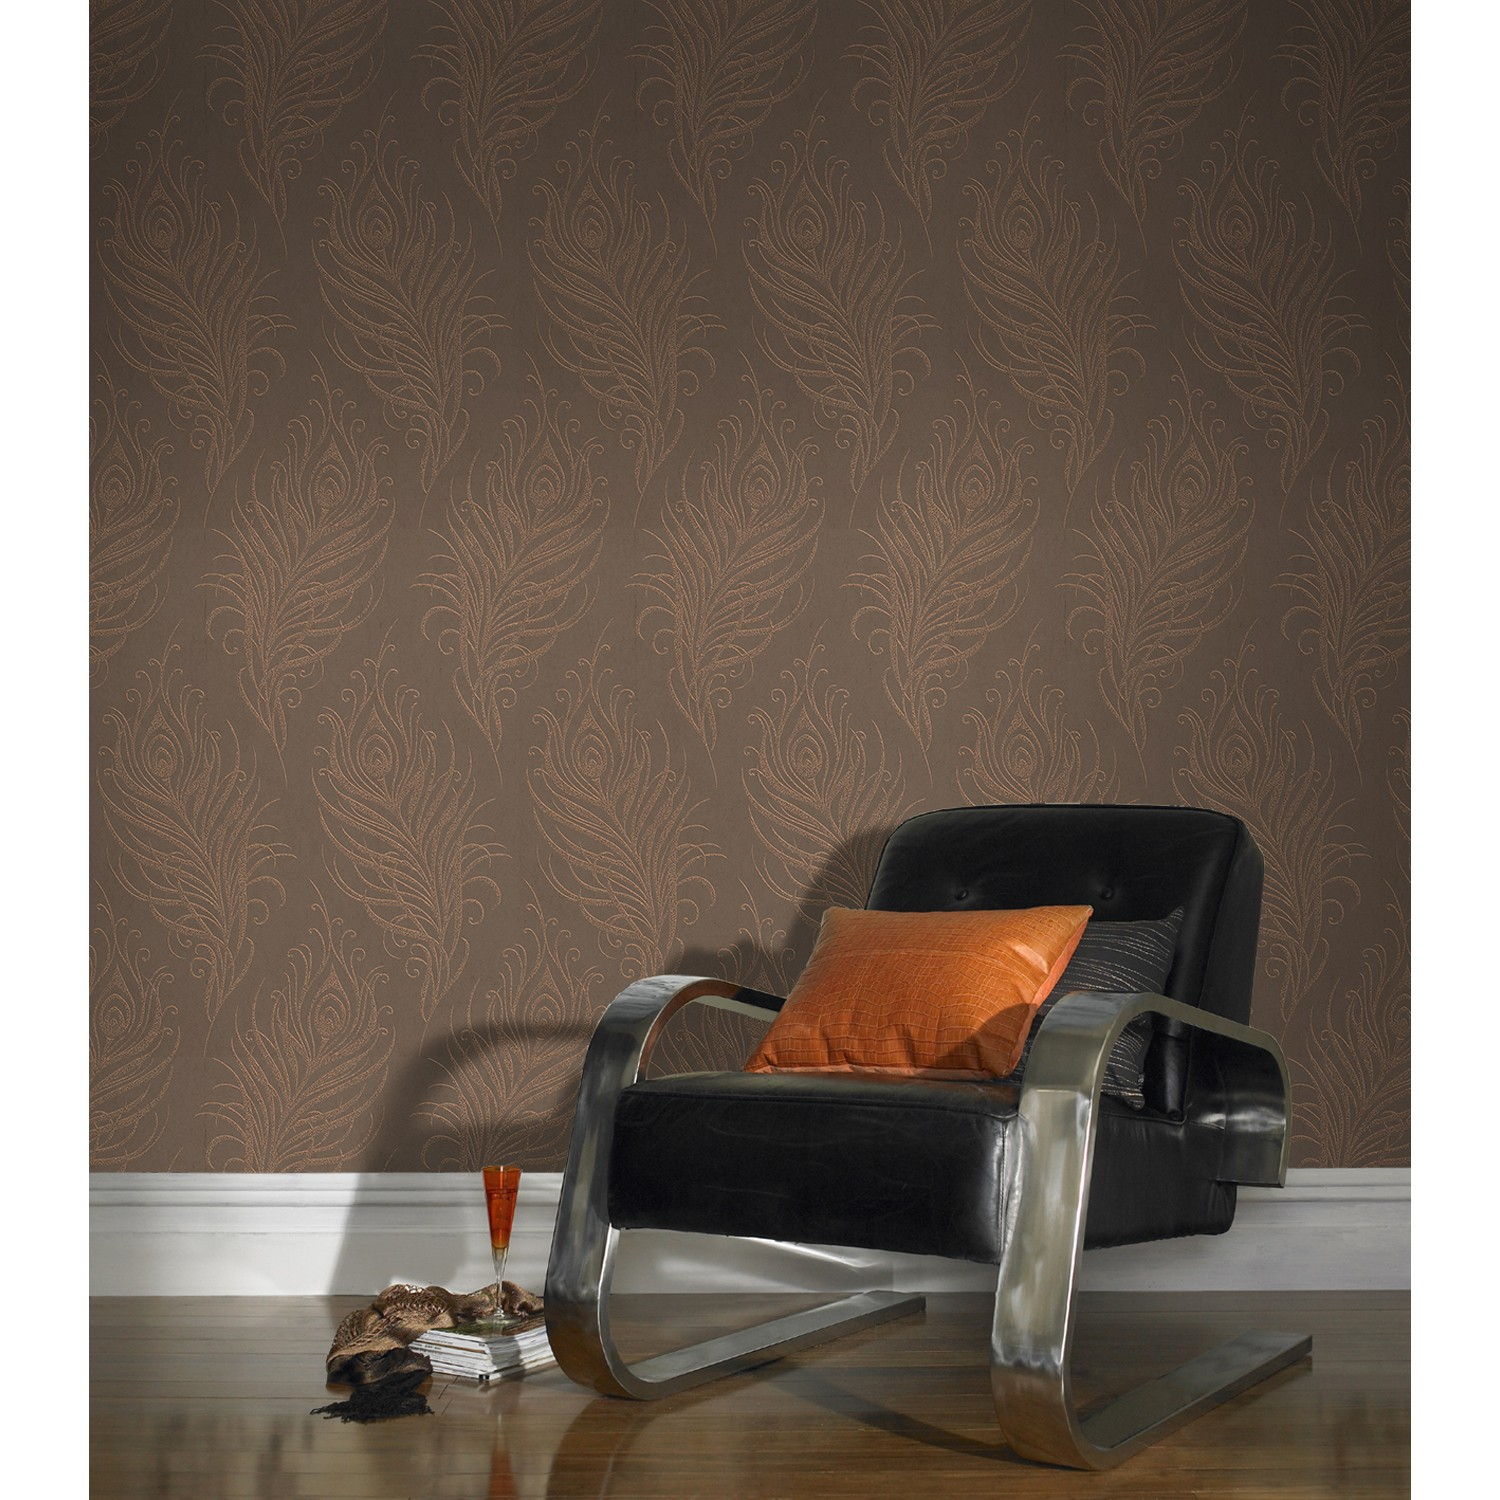 graham and brown quill copper 1000x50cm leekes. Black Bedroom Furniture Sets. Home Design Ideas